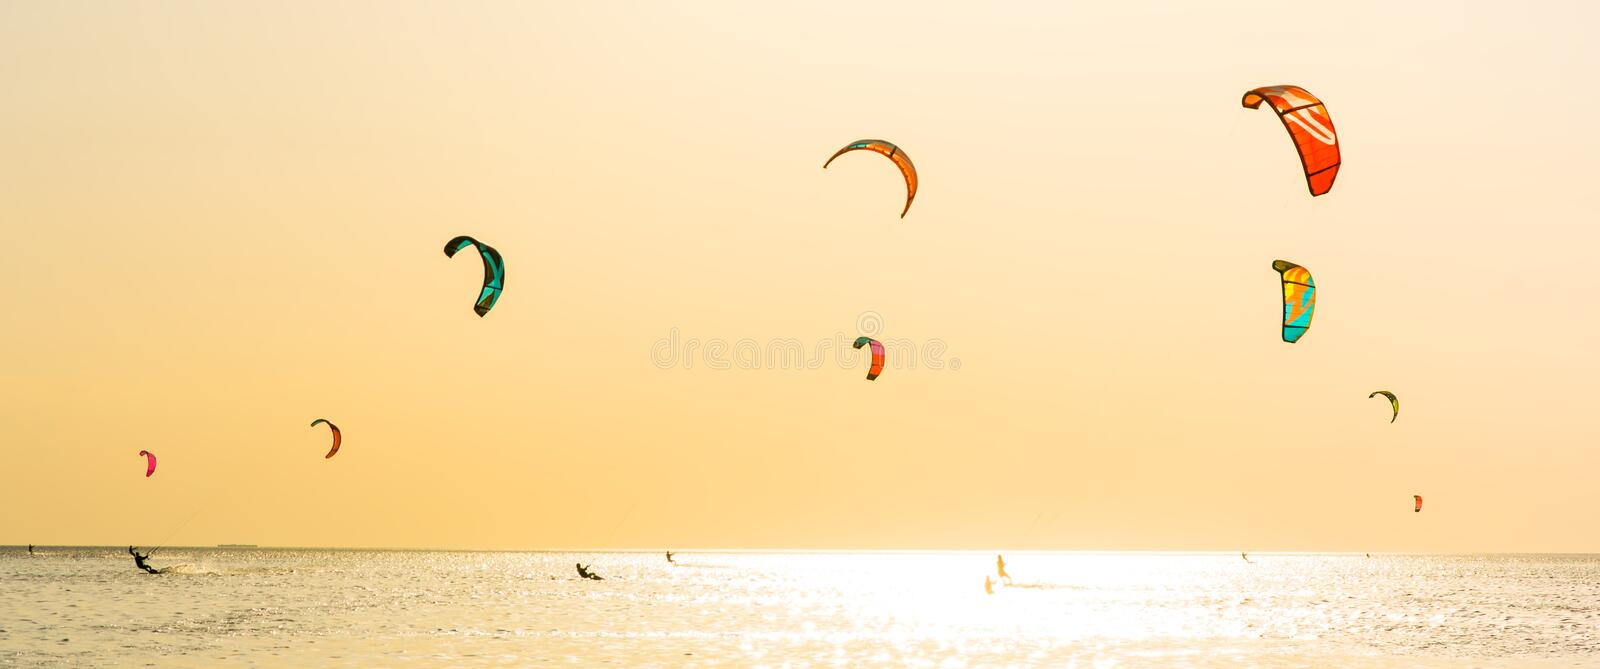 Kite-surfing and a lot of silhouettes of kites in the sky. Holidays on nature. Artistic picture. Beauty world. Panorama stock photos